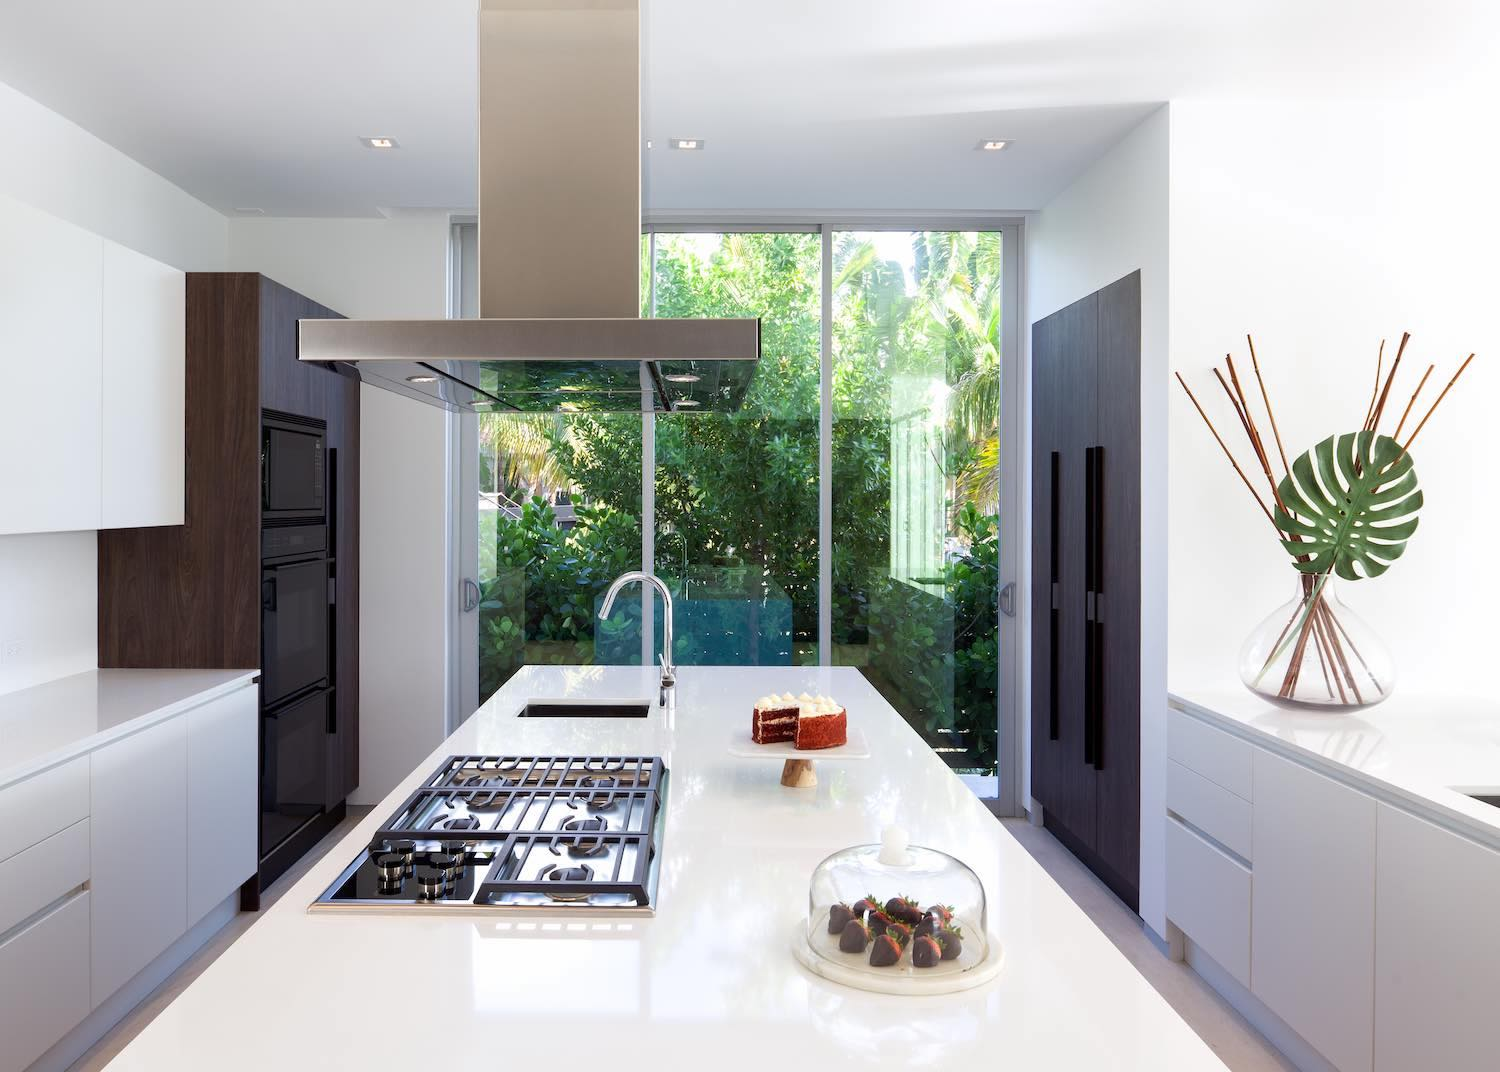 modern glossy white kitchen with windows toward garden